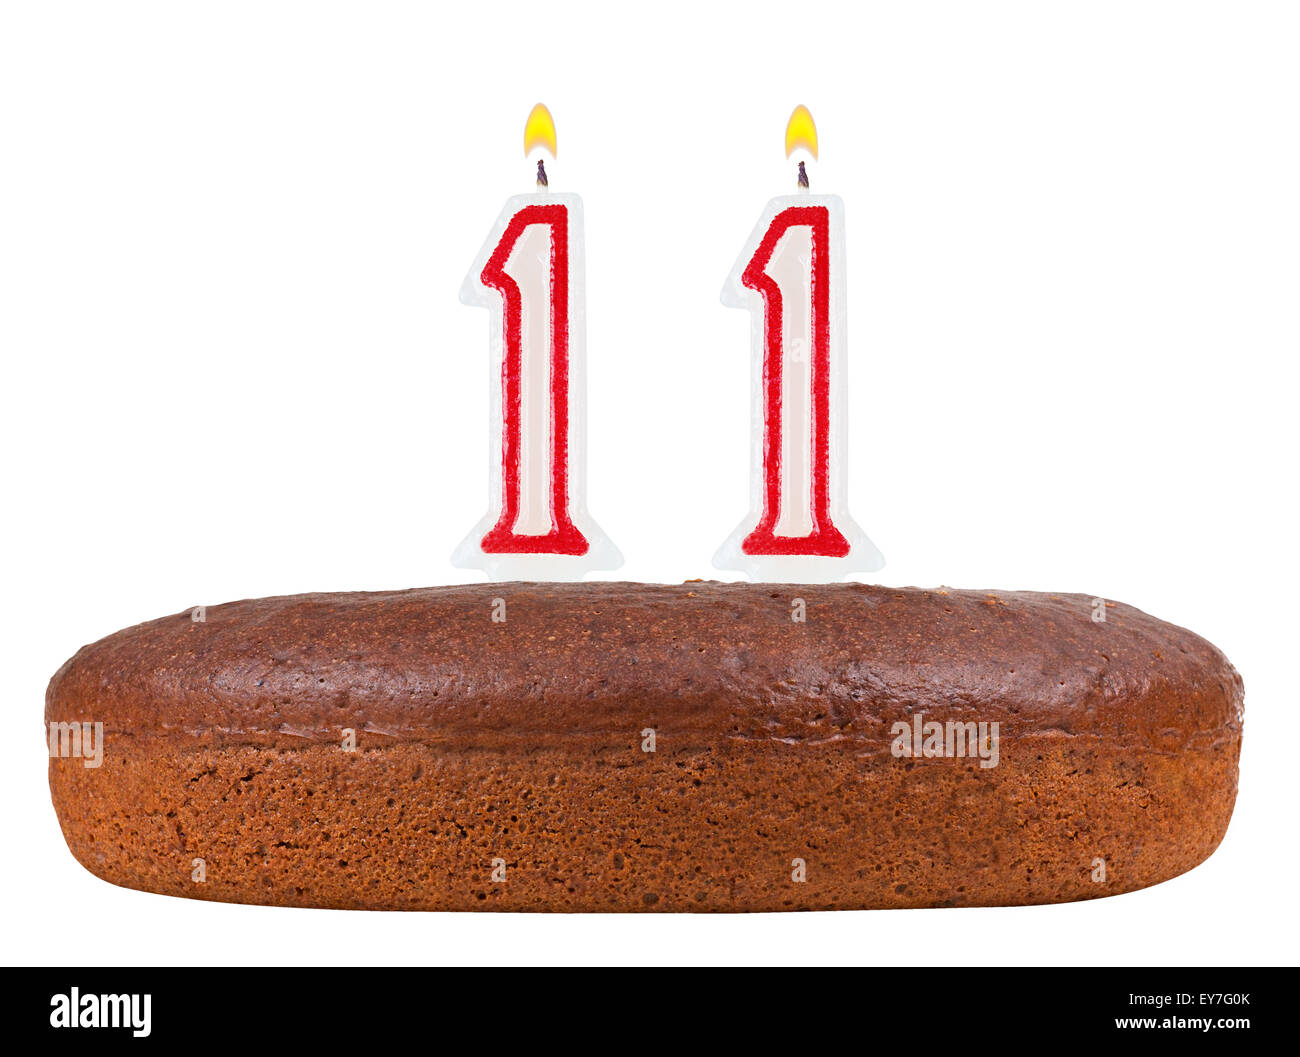 Birthday Cake With Candles Number 11 Isolated On White Background